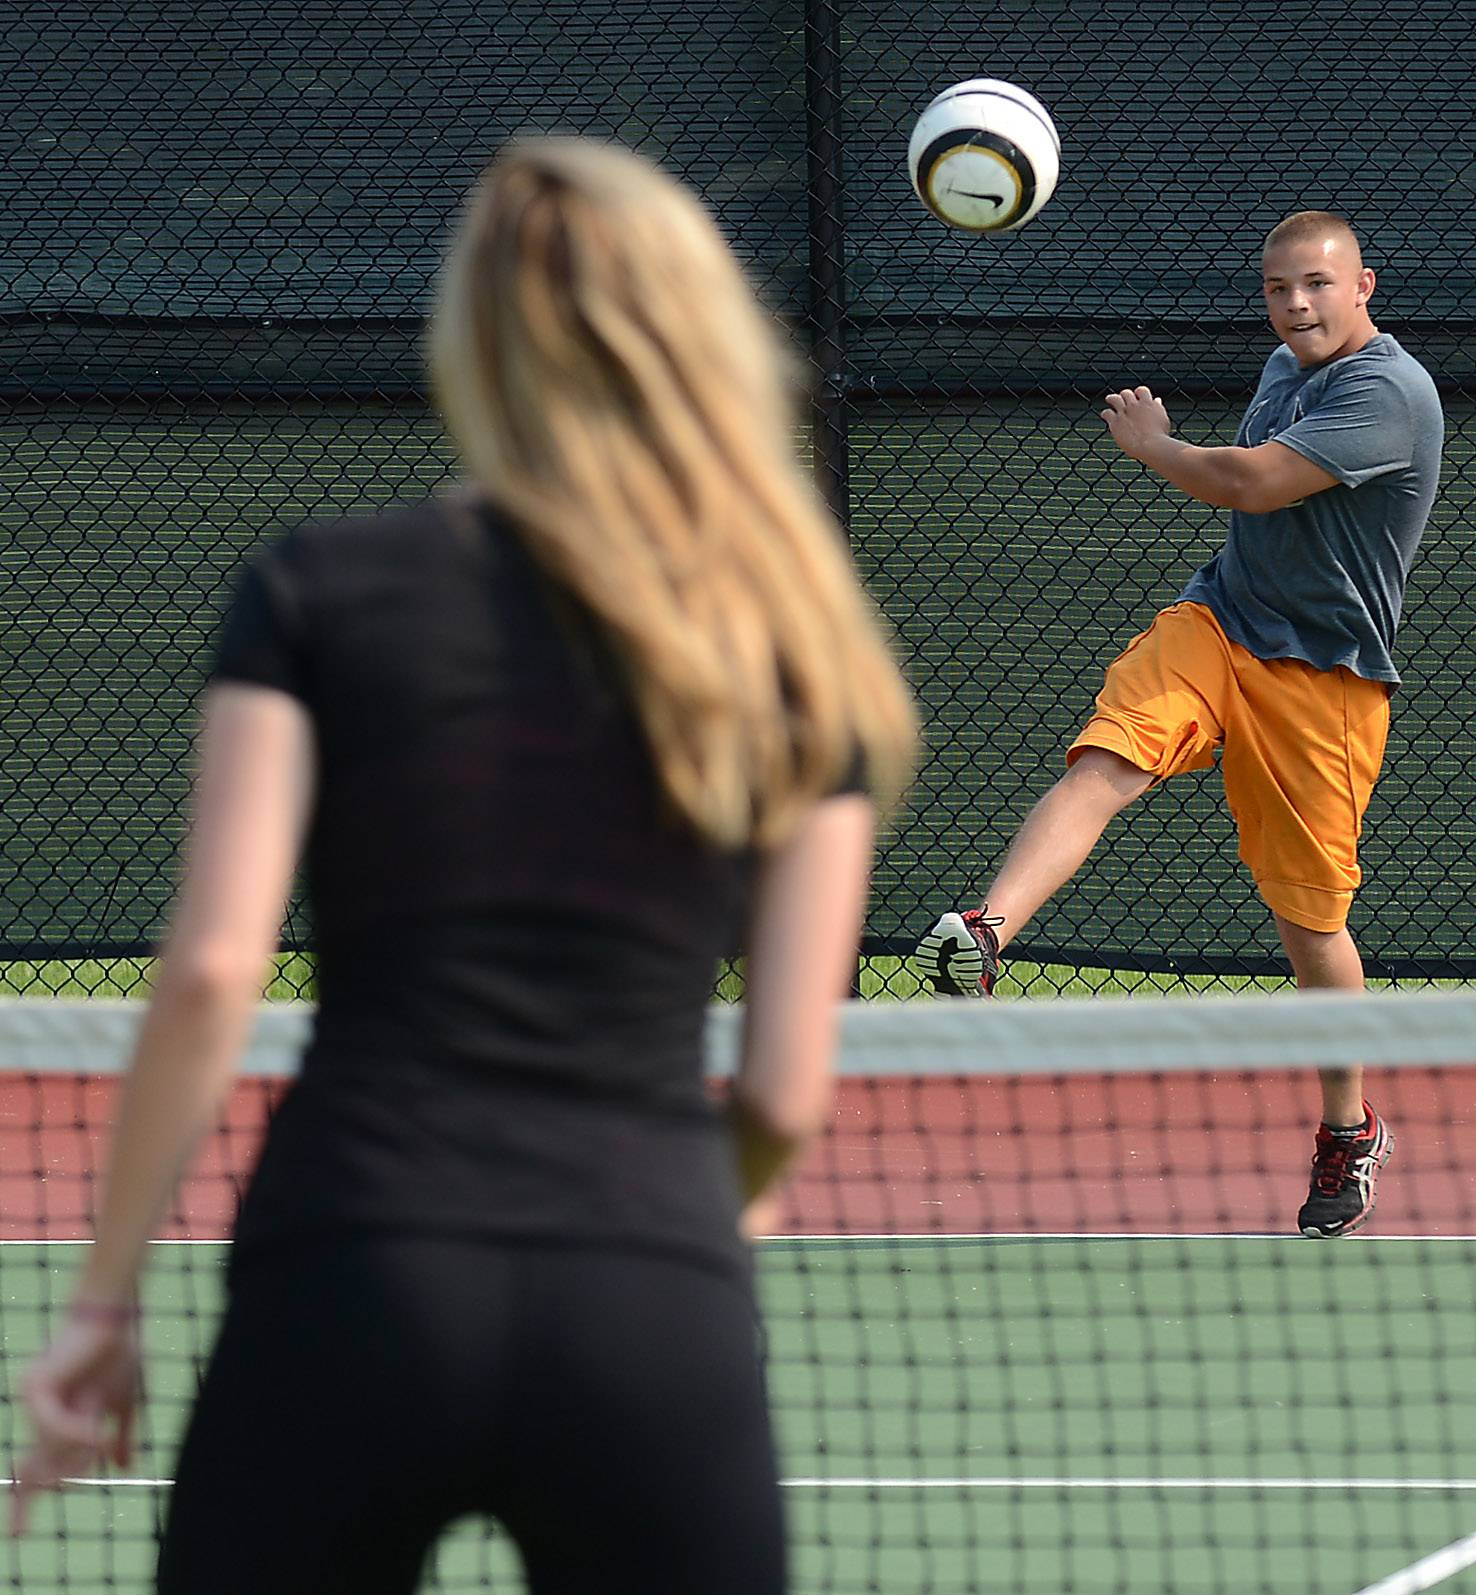 Jacob Metoyer, of South Elgin, and Amanda Soukup, of St. Charles, play their own form of tennis with a soccer ball at Primrose Farm Park in St. Charles Monday afternoon.